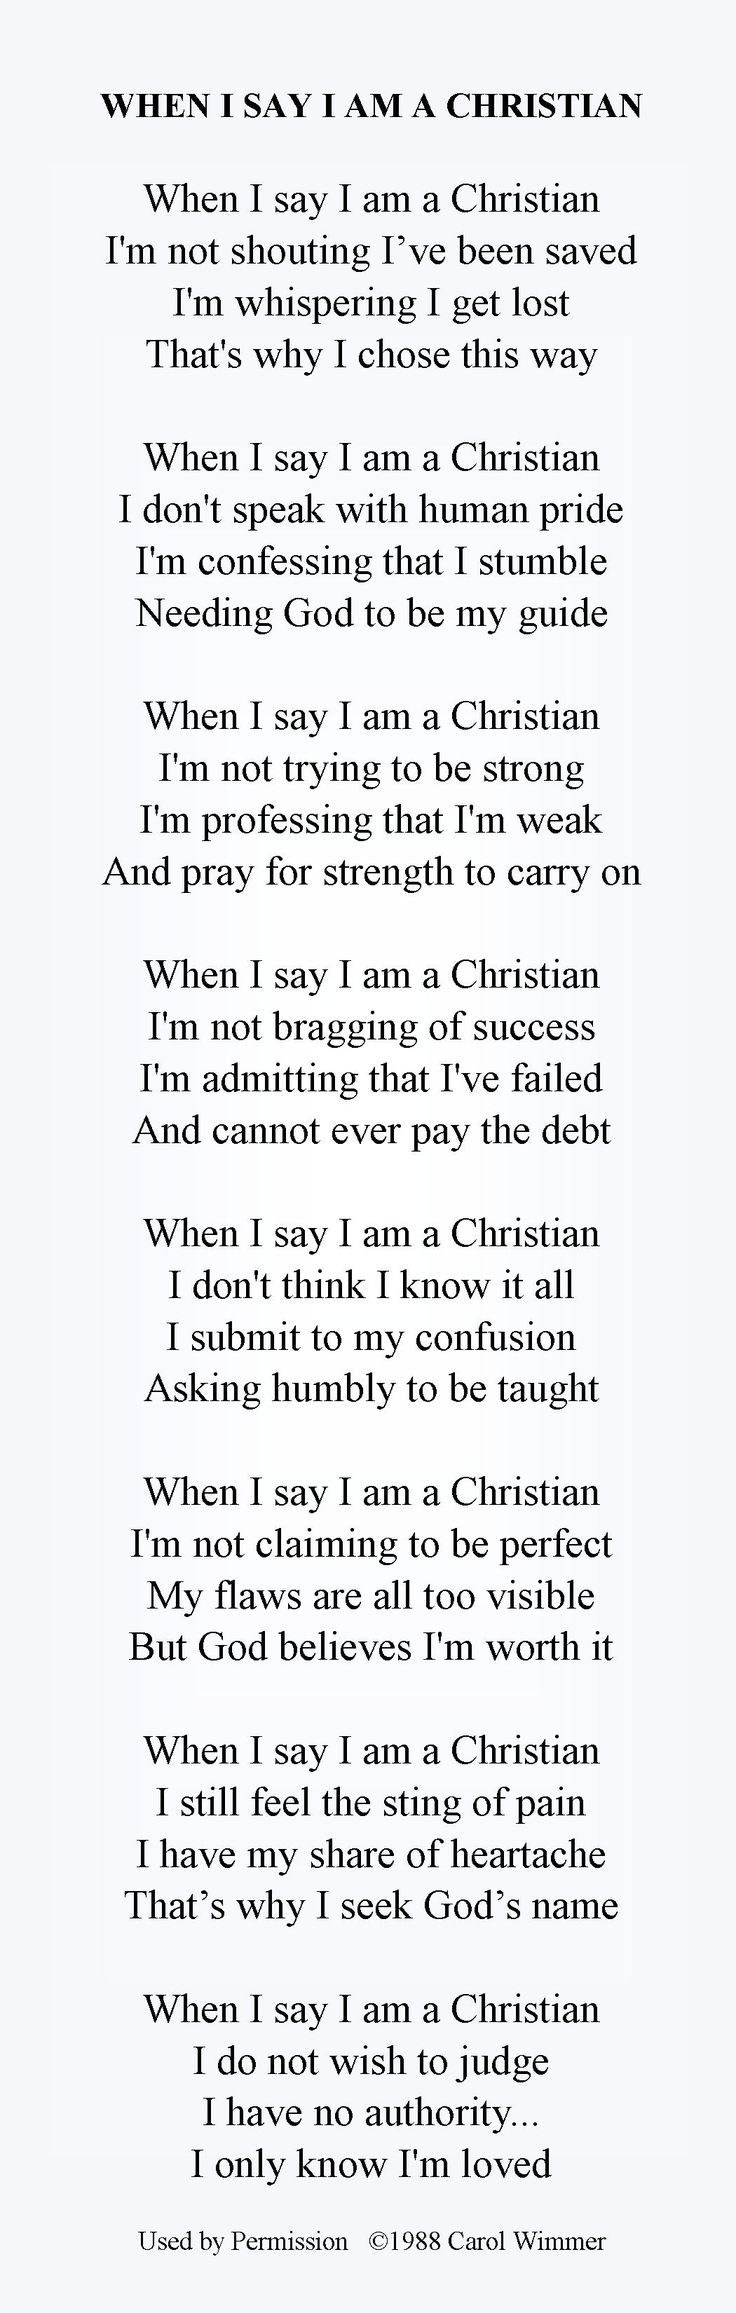 When I say I am a Christian poem - just words on white